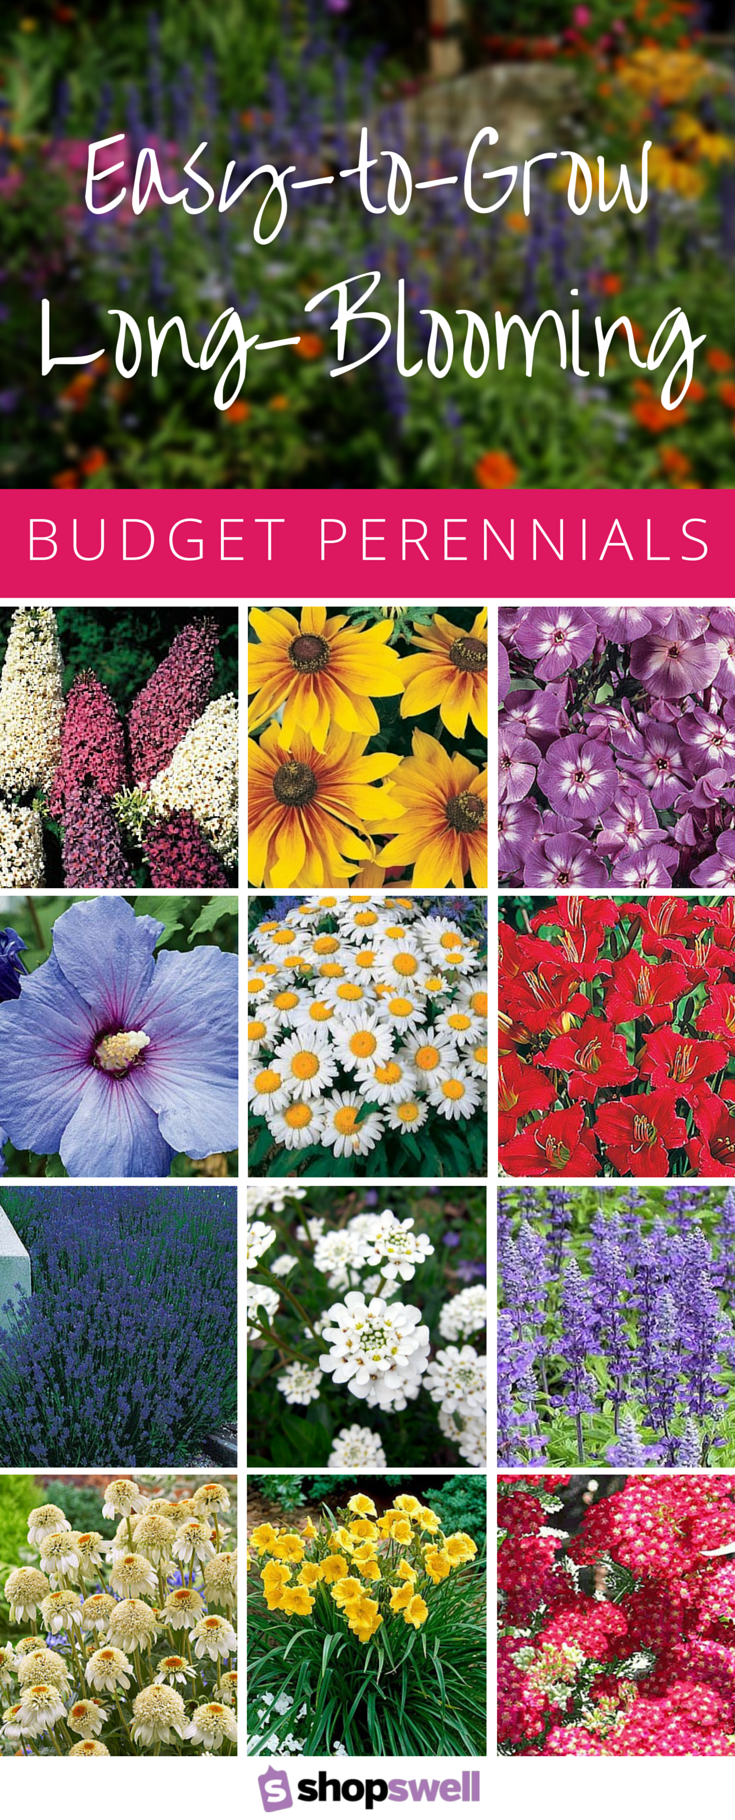 16 Budget Blooms You Can Depend On is part of Garden vines, Plants, Garden shrubs, Perennial garden, Flowers perennials, Perennials - These 16 garden perennials feature a long blooming season, easytogrow properties, and a budgetfriendly price  What's not to love ! Shop perennials from this collection now